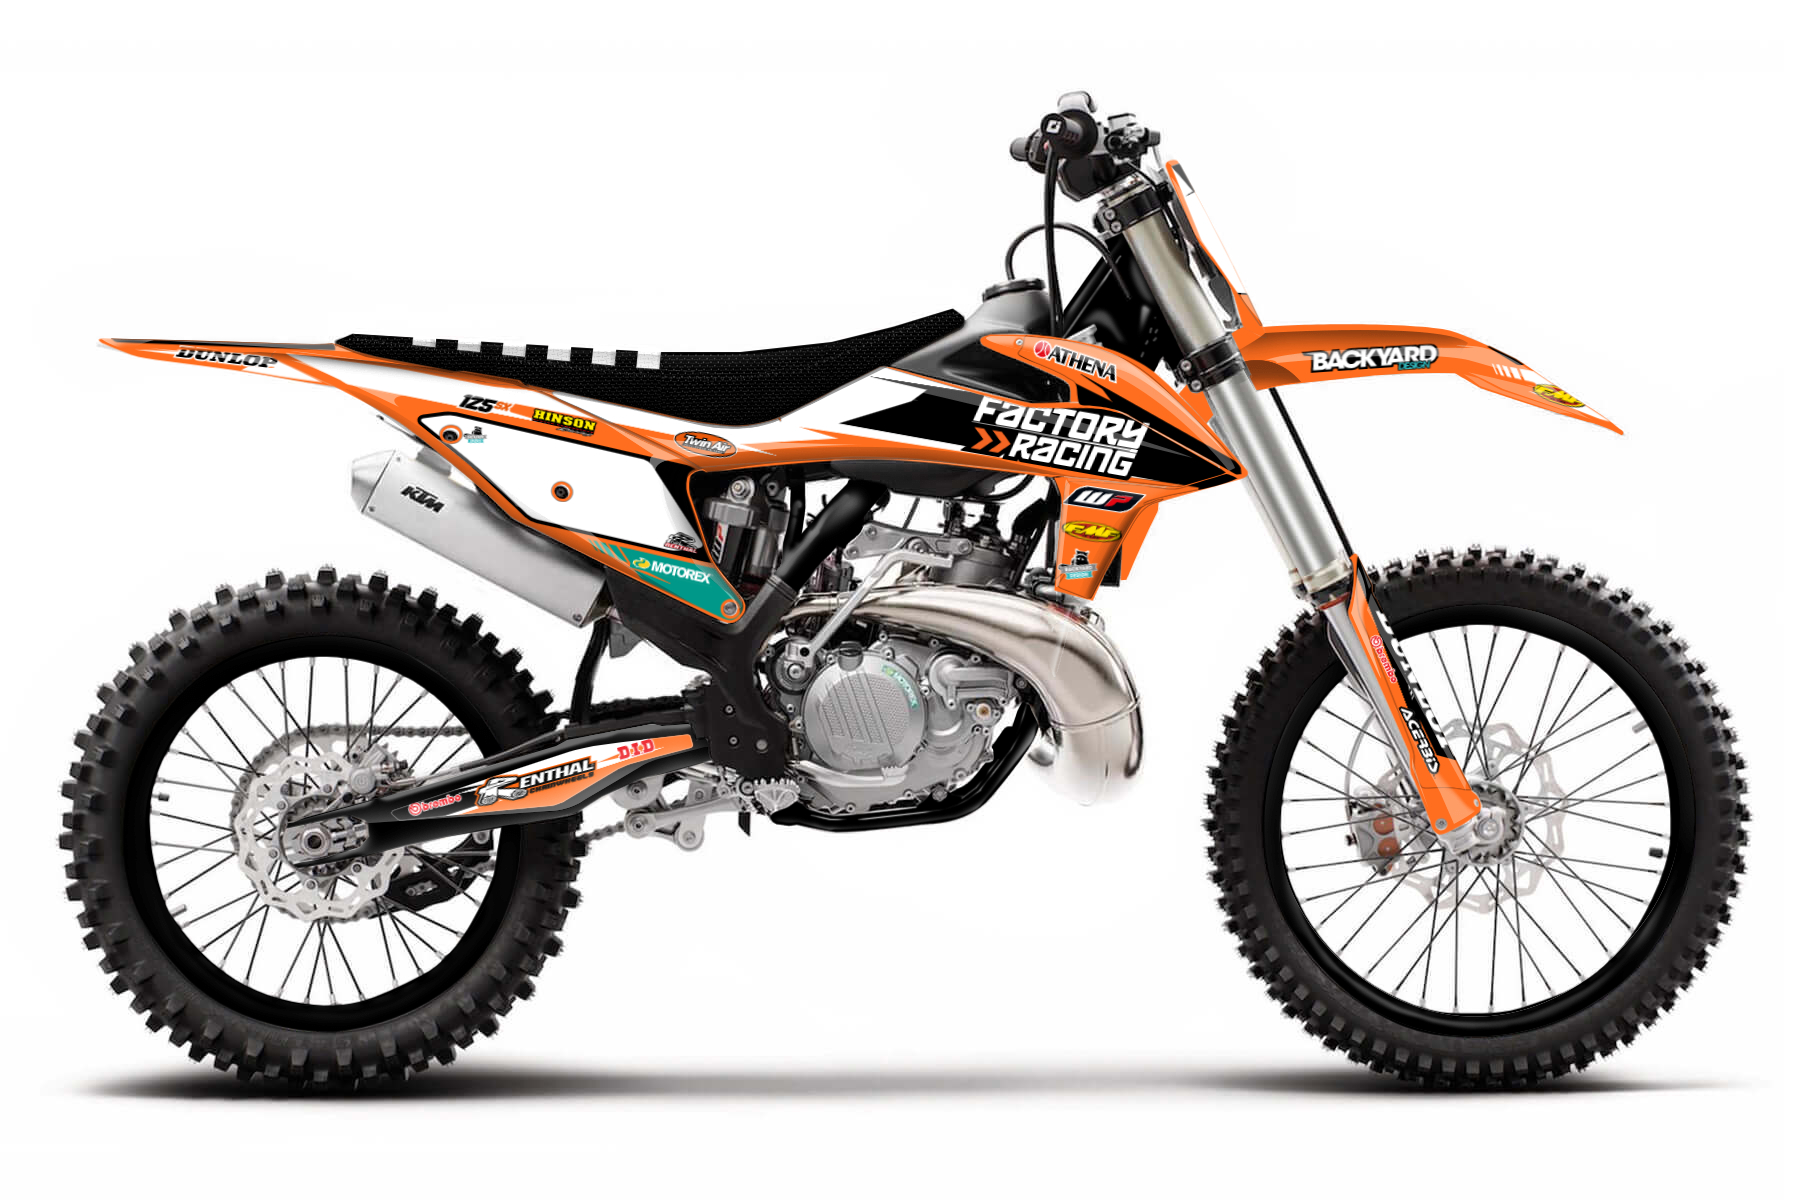 KTM SX 125 MX Graphic Kits  If you seek to get better and better and sharpen your abilities on the mx track the KTM SX 125 is the perfect bike for your daily training. It is easy to handle and has loads of power.